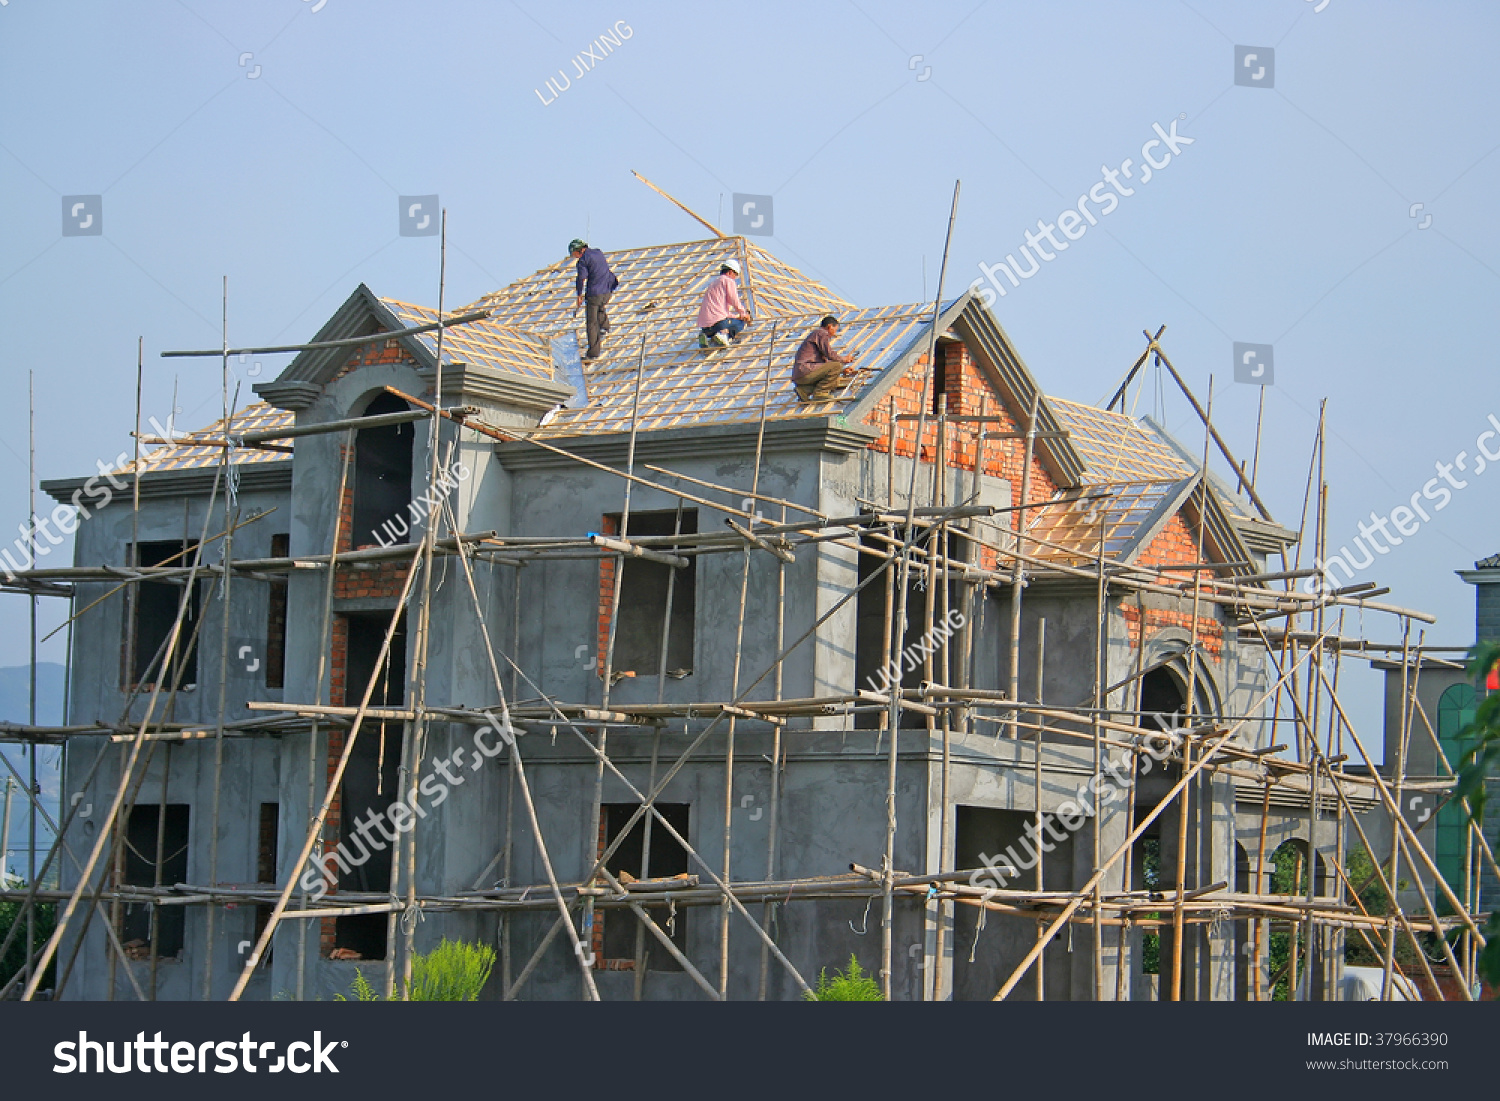 Carpenter building roof house construction site stock for House building website